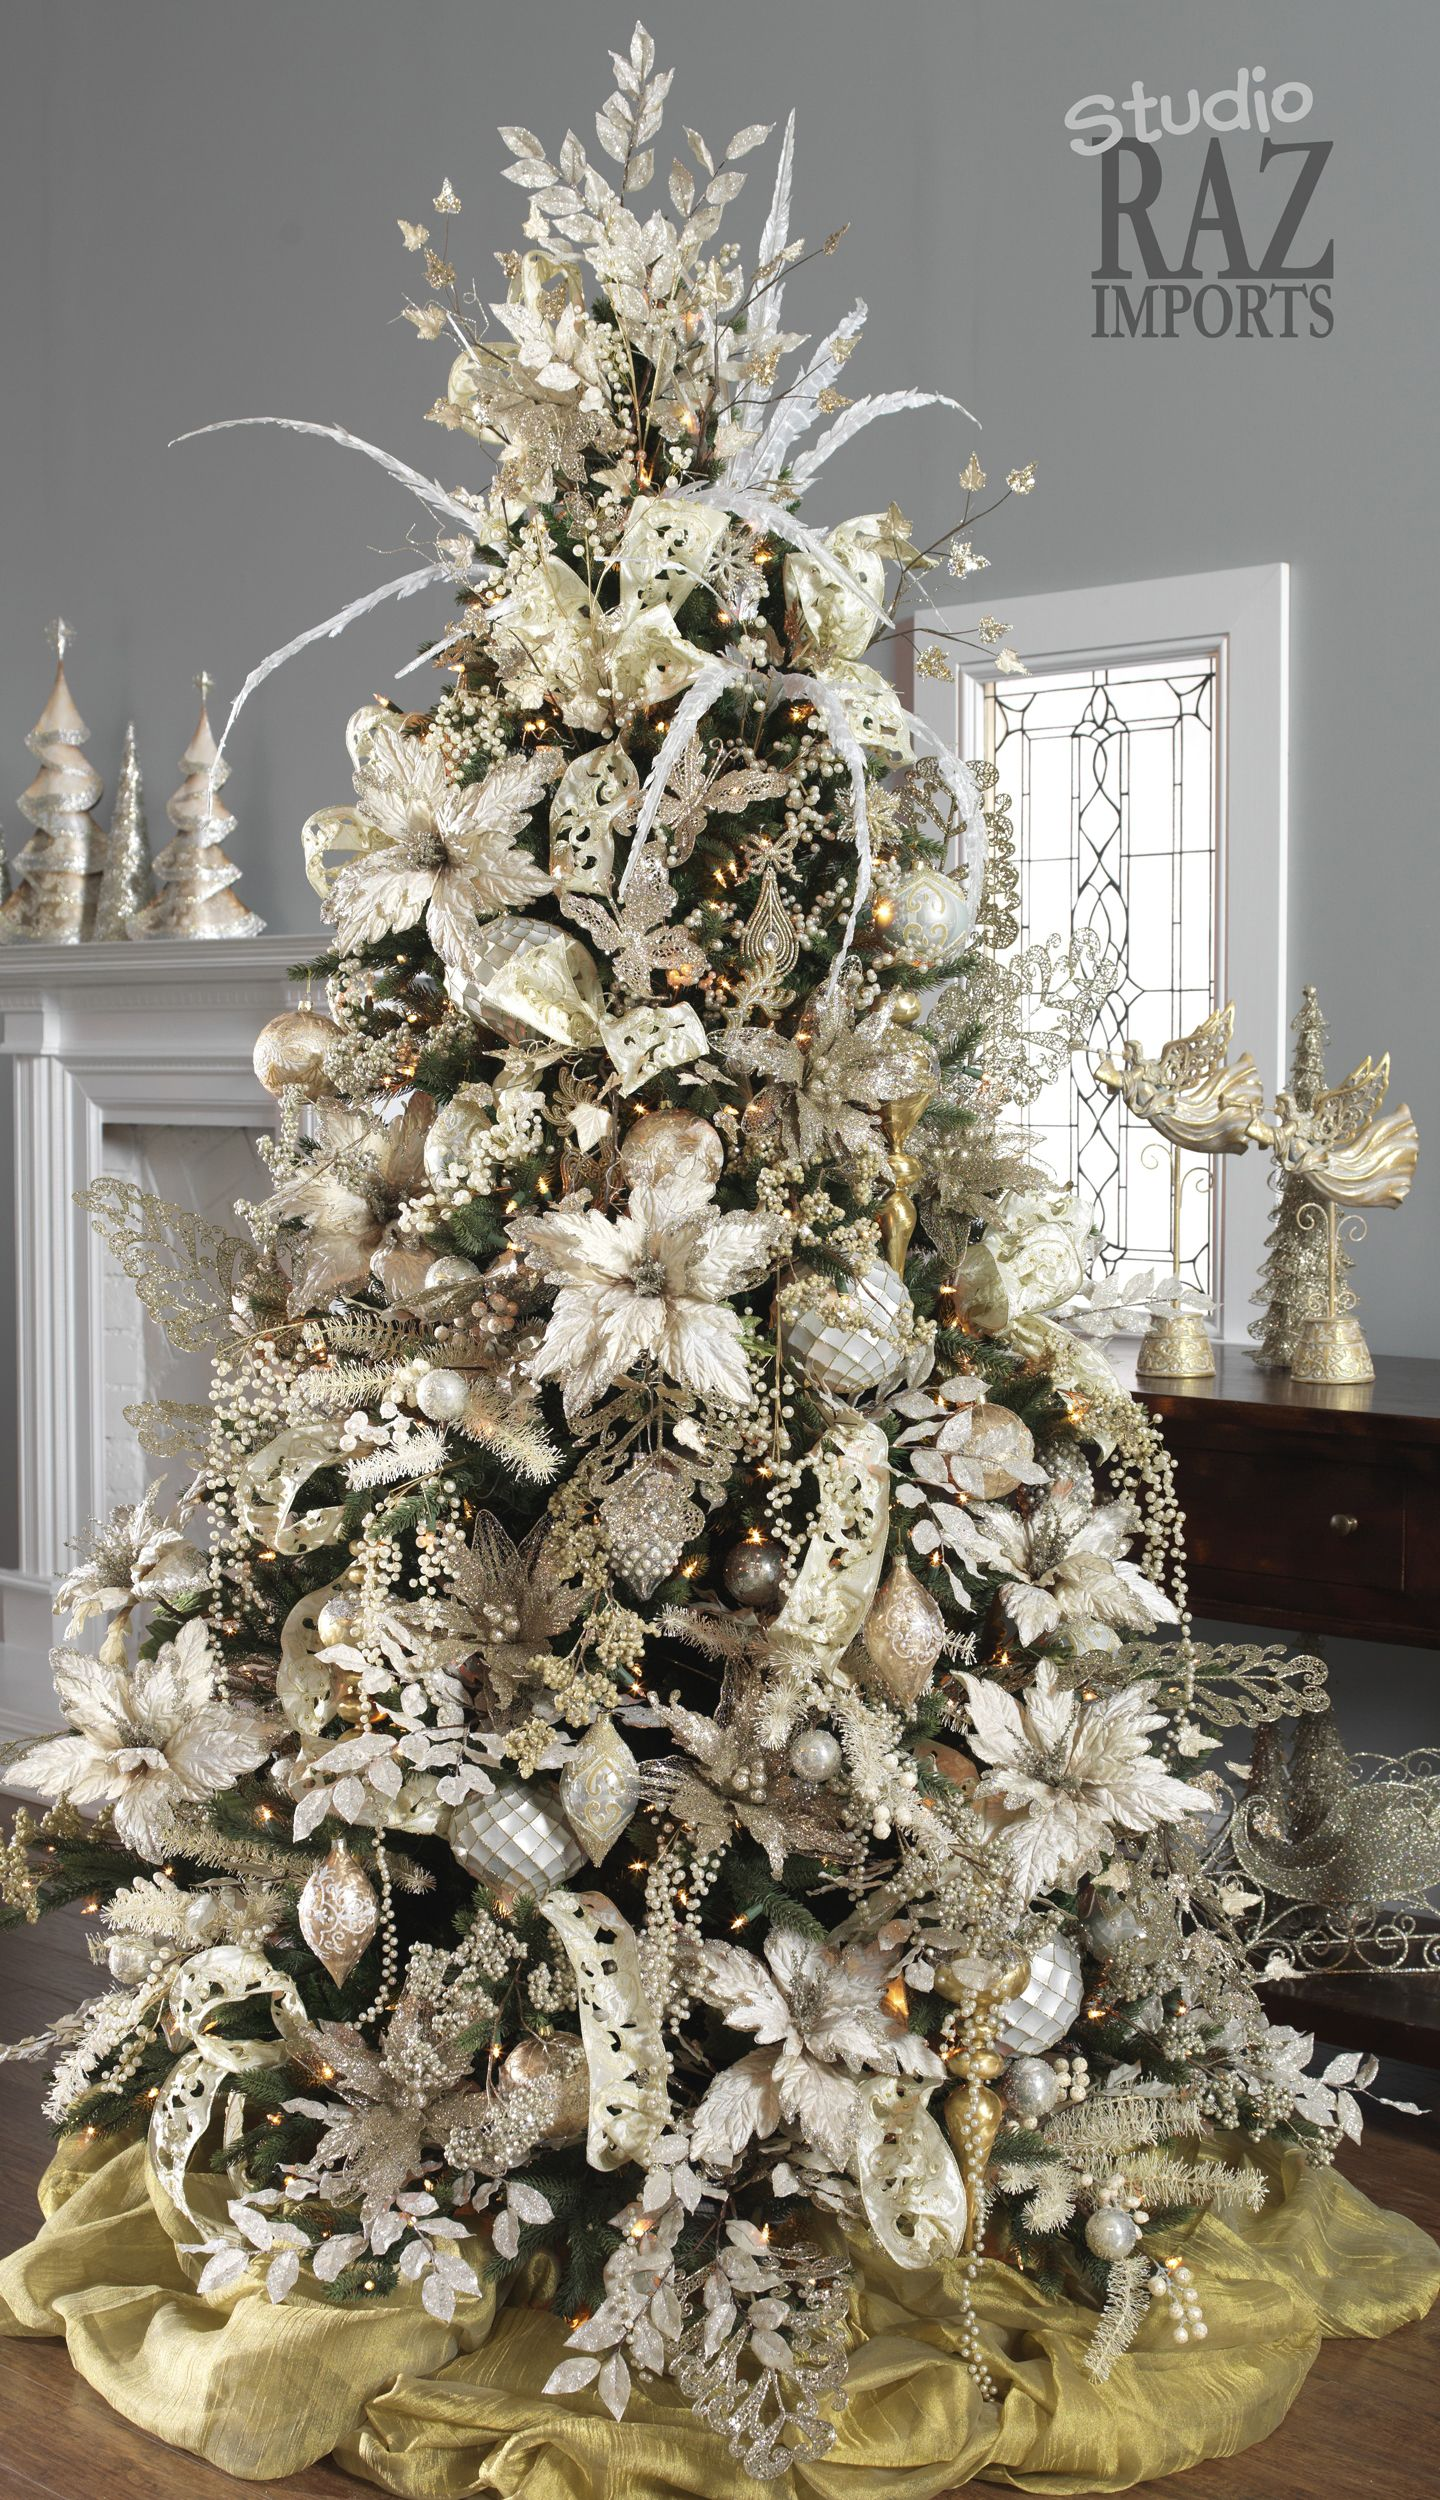 37 inspiring christmas decorating ideas shown white christmas tree ala winter wonderland decoholic - Christmas Tree Decorating Ideas 2016